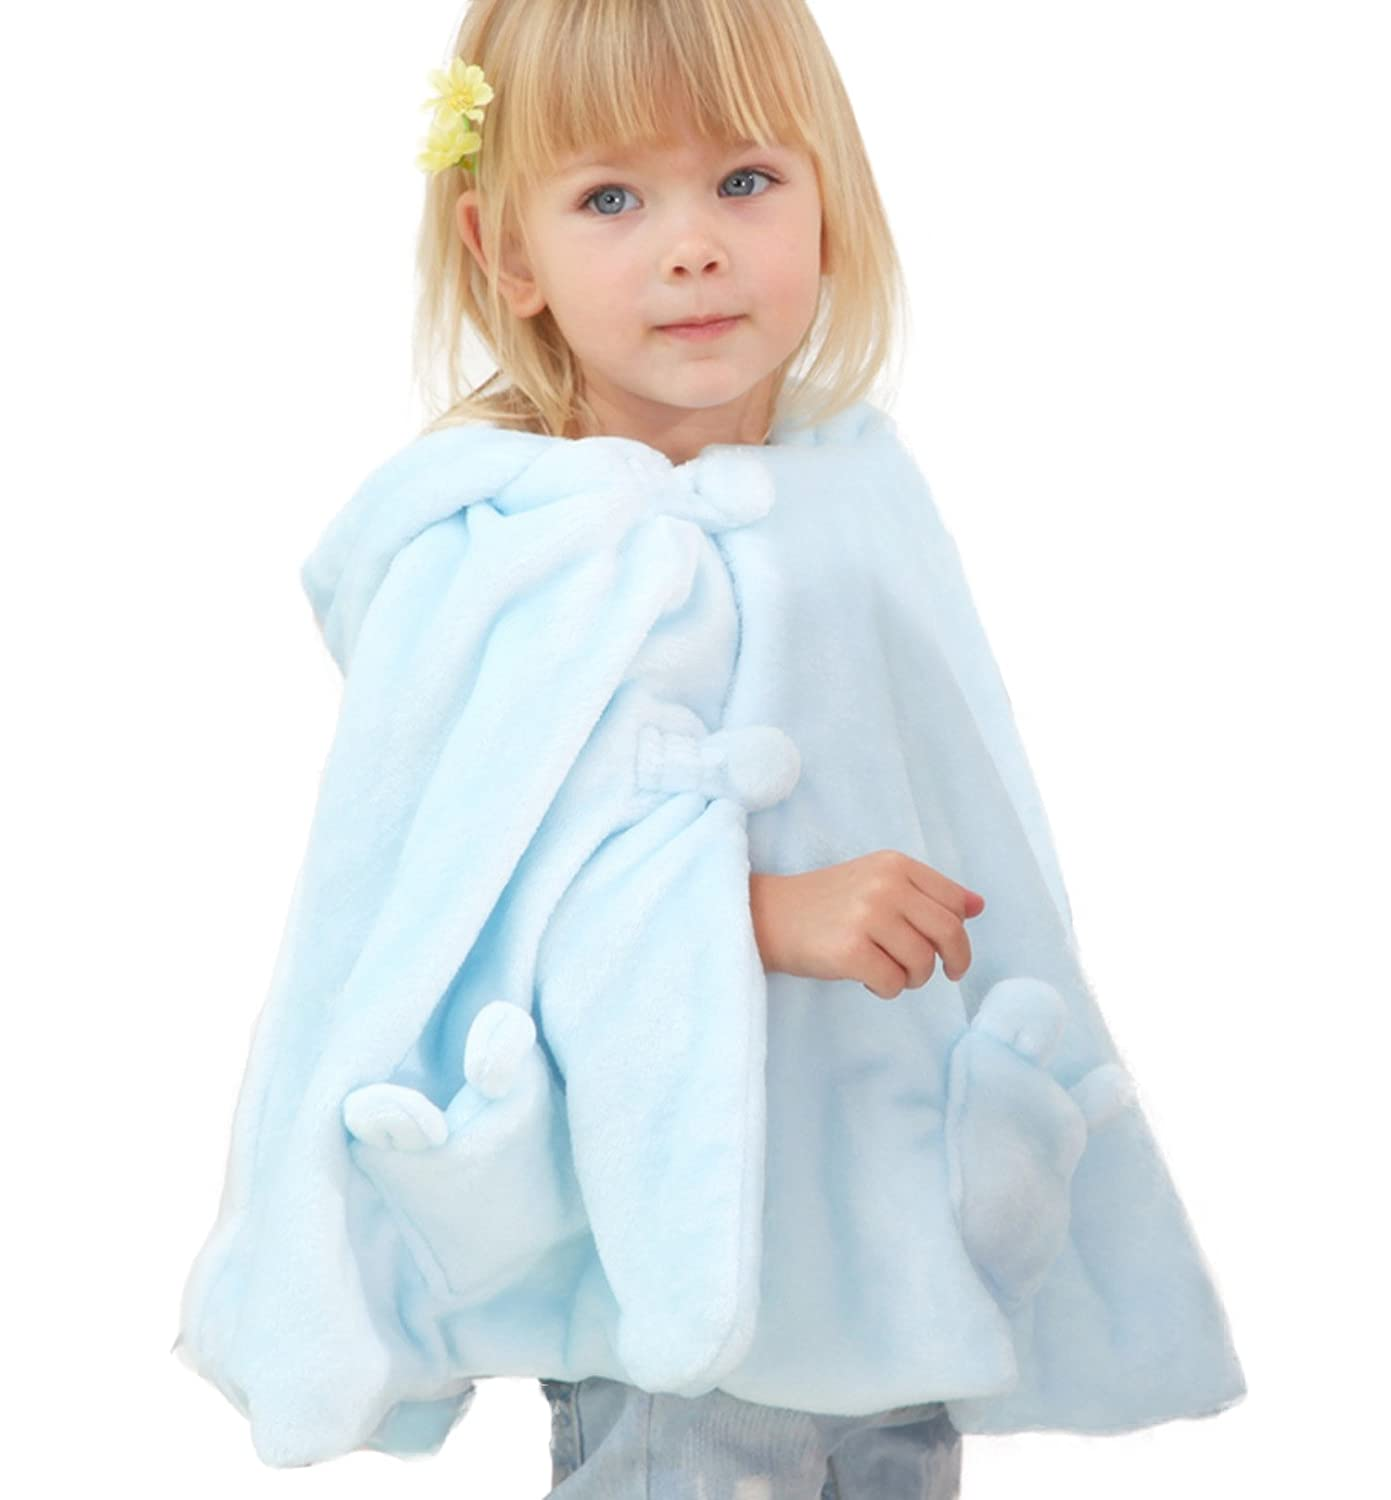 LETTAS Baby Toddler Infant Fleece Hoodie Easter Poncho Rabbit Ears Cape Coat Cloak Blue 18-36 Months LTCS906